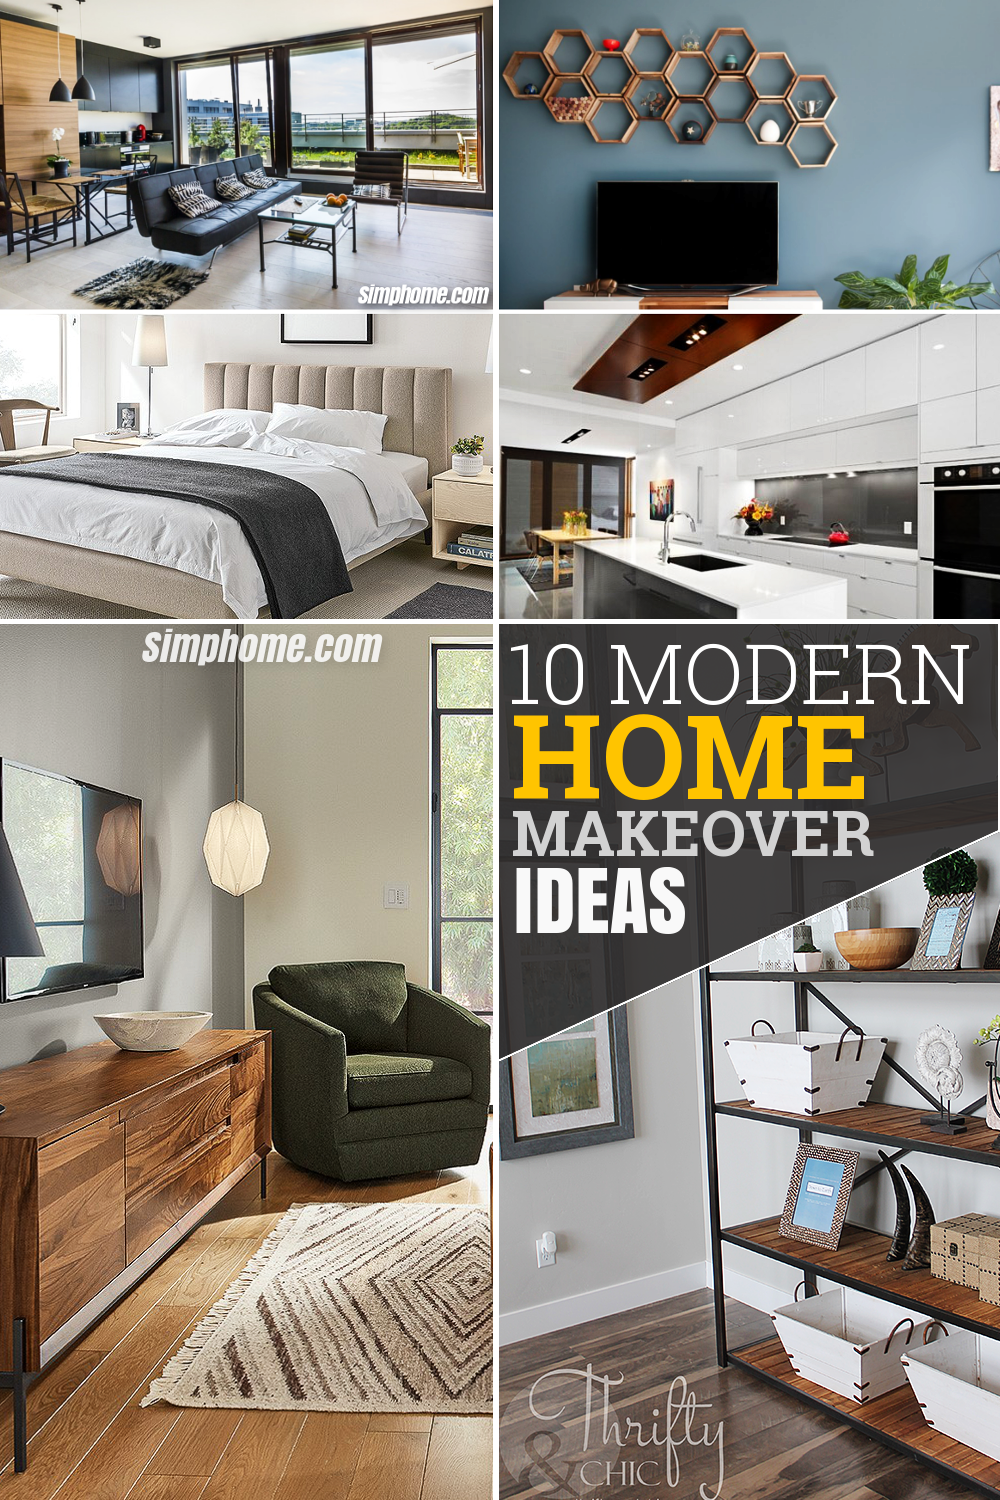 10 modern home makeover ideas by SIMPHOME.COM Pintrerest long image